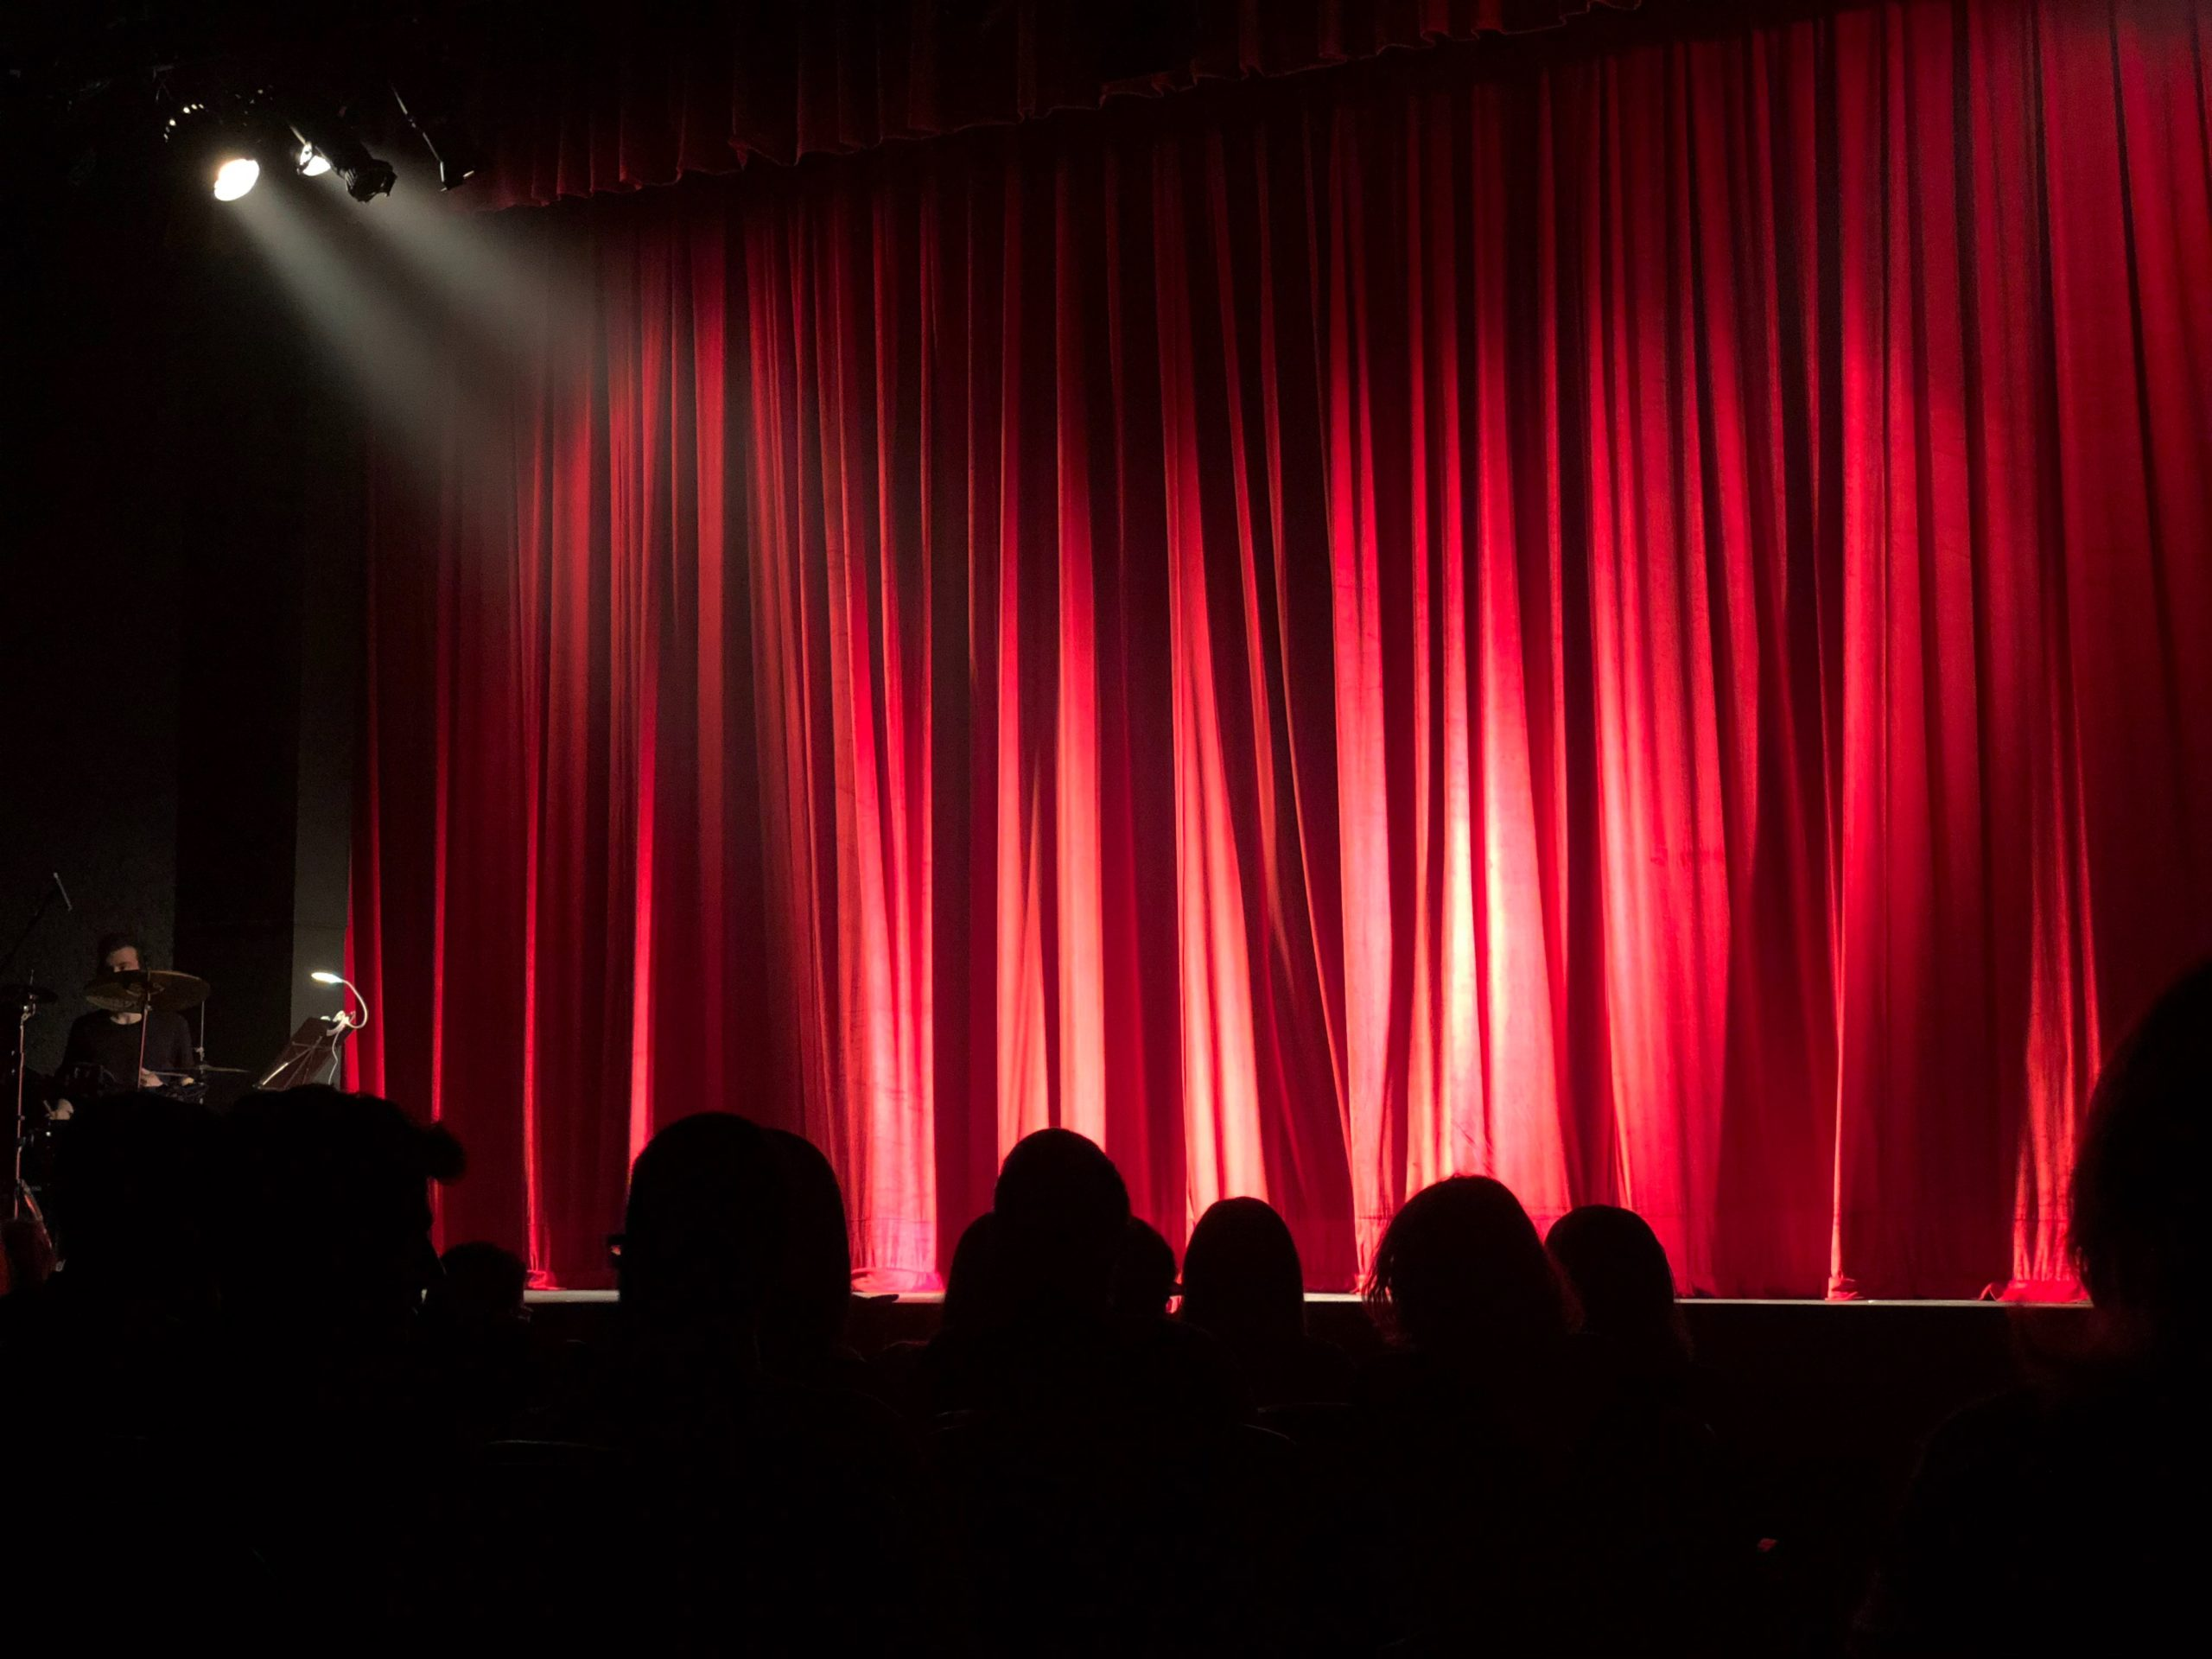 A red curtain down on a stage, silhouettes of audience members.